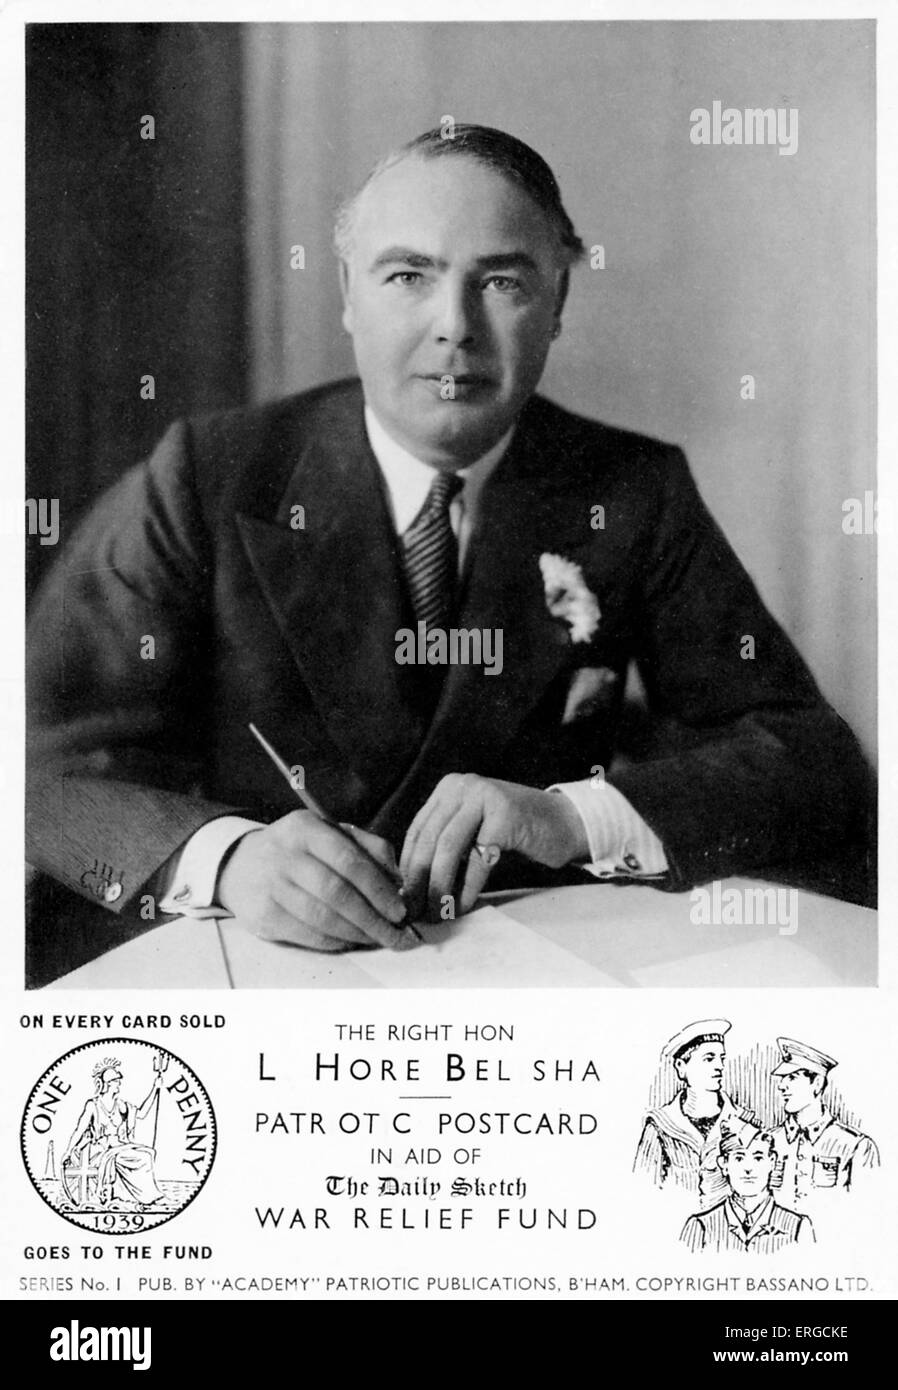 Hore Belisha - portrait for charity appeal. Isaac Leslie Hore-Belisha, 1st Baron Hore-Belisha, English Jewish politician. - Stock Image